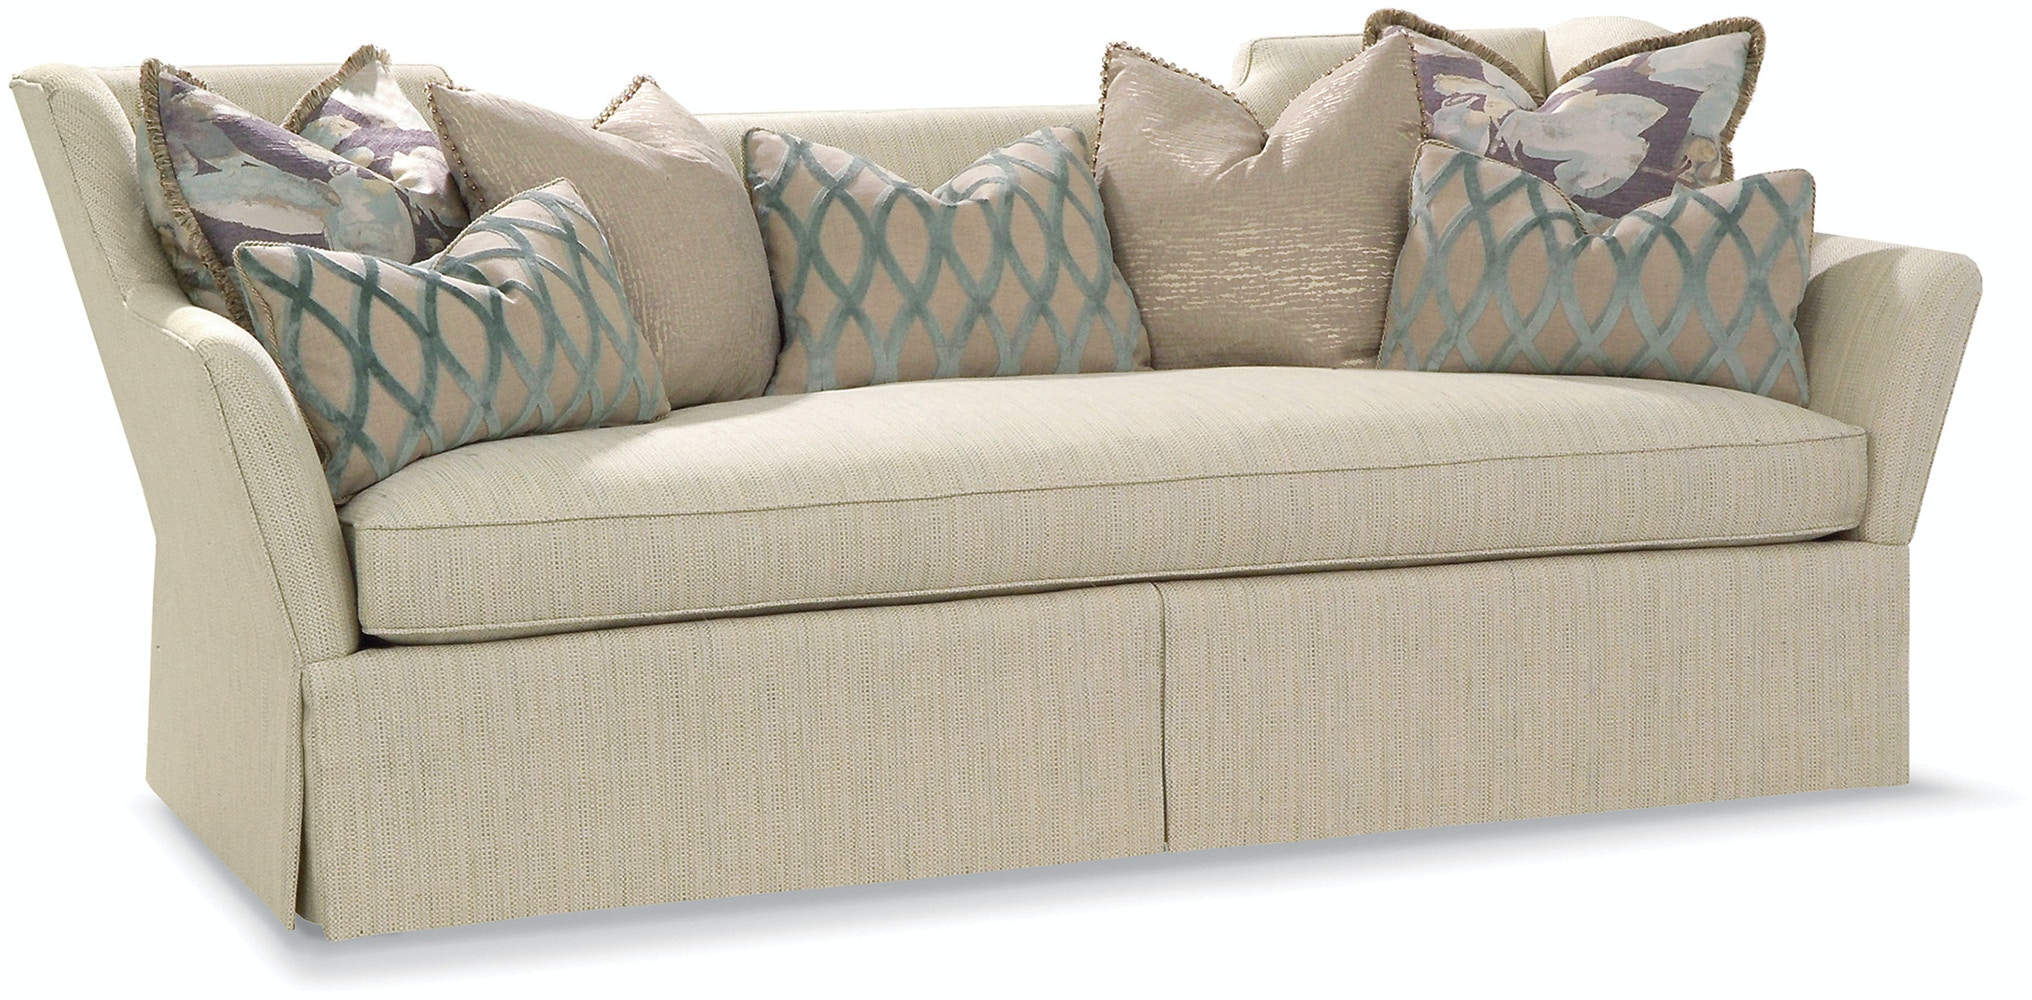 Taylor King Furniture Living Room Mandara Sofa 8513 03